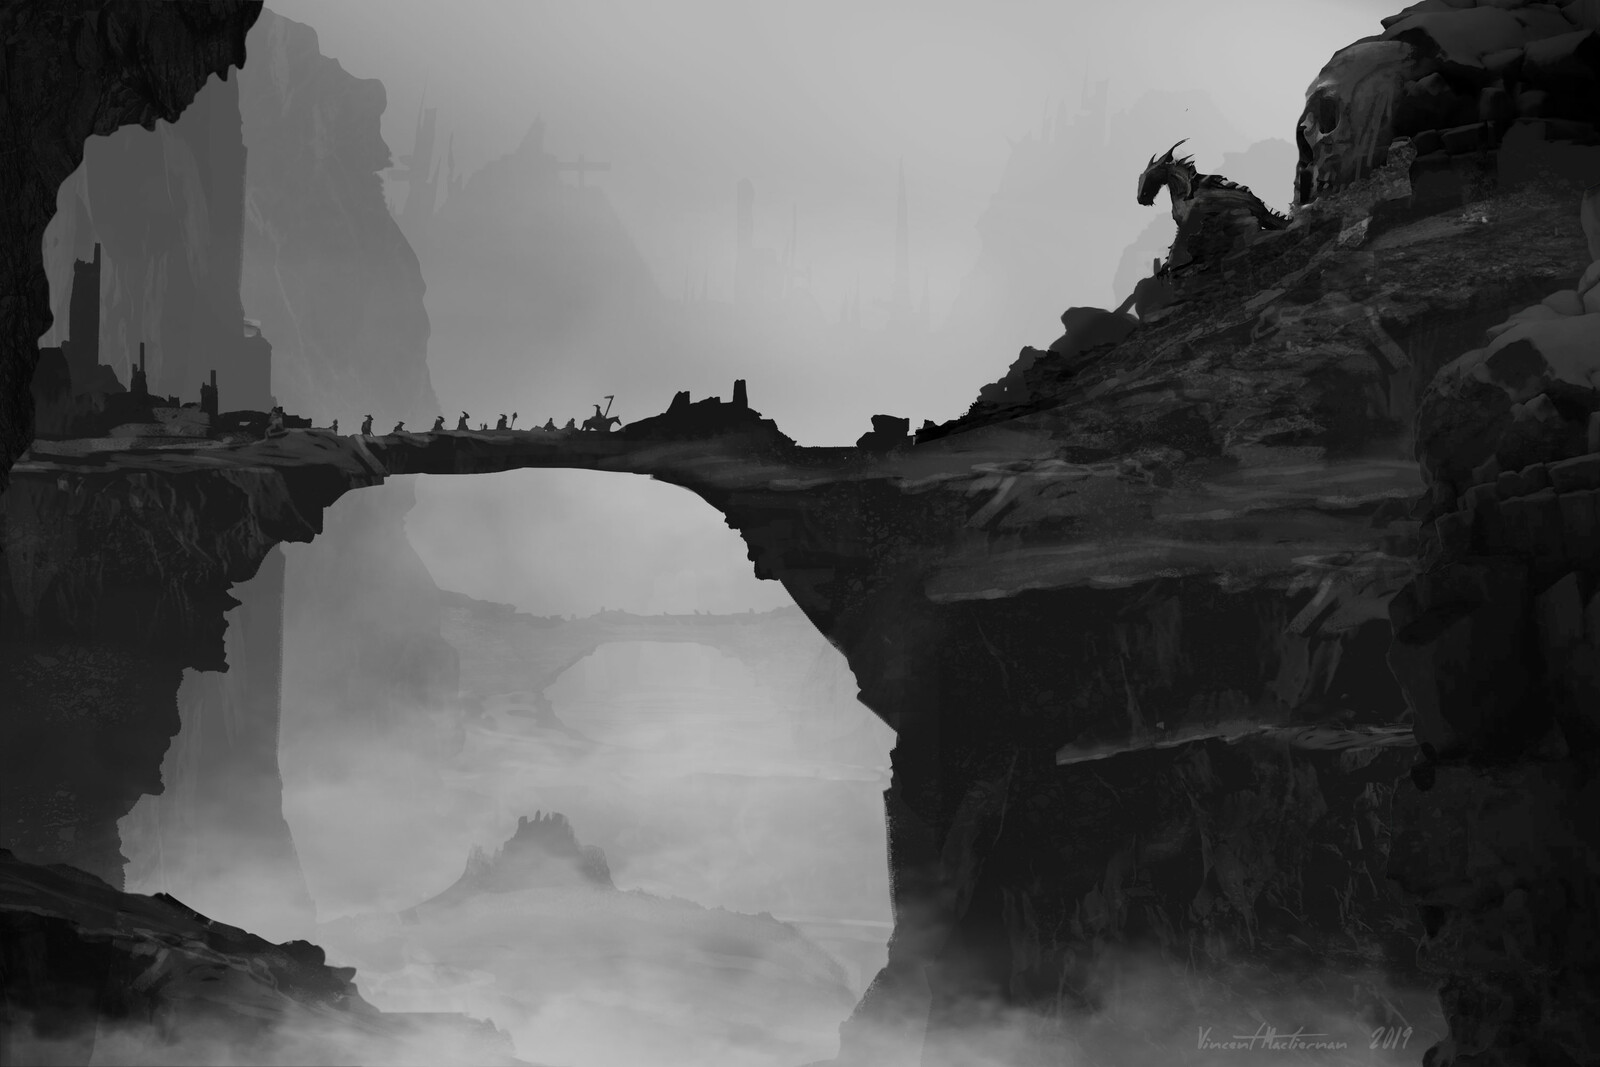 The Bridge of Reckoning